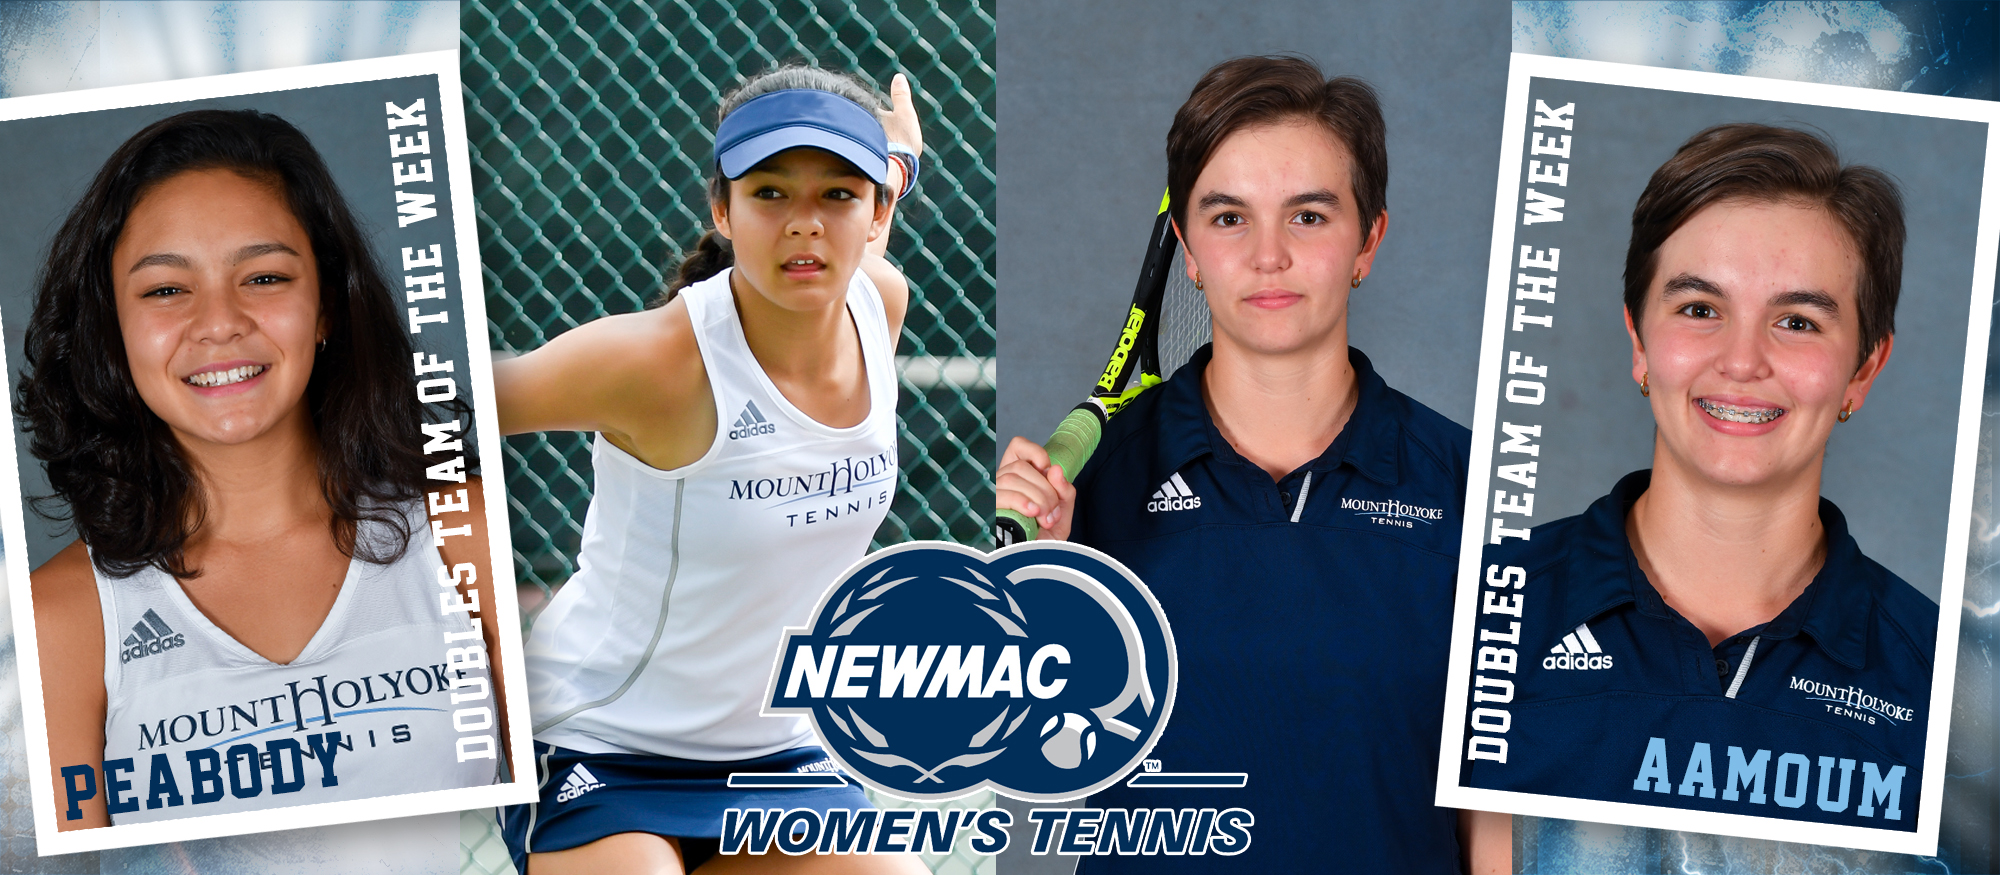 Photo featuring Lyons tennis players Catherine Peabody (left) and Annissa Aamoum (right) for being named NEWMAC Doubles Team of the Week on Mar. 18th, 2019.